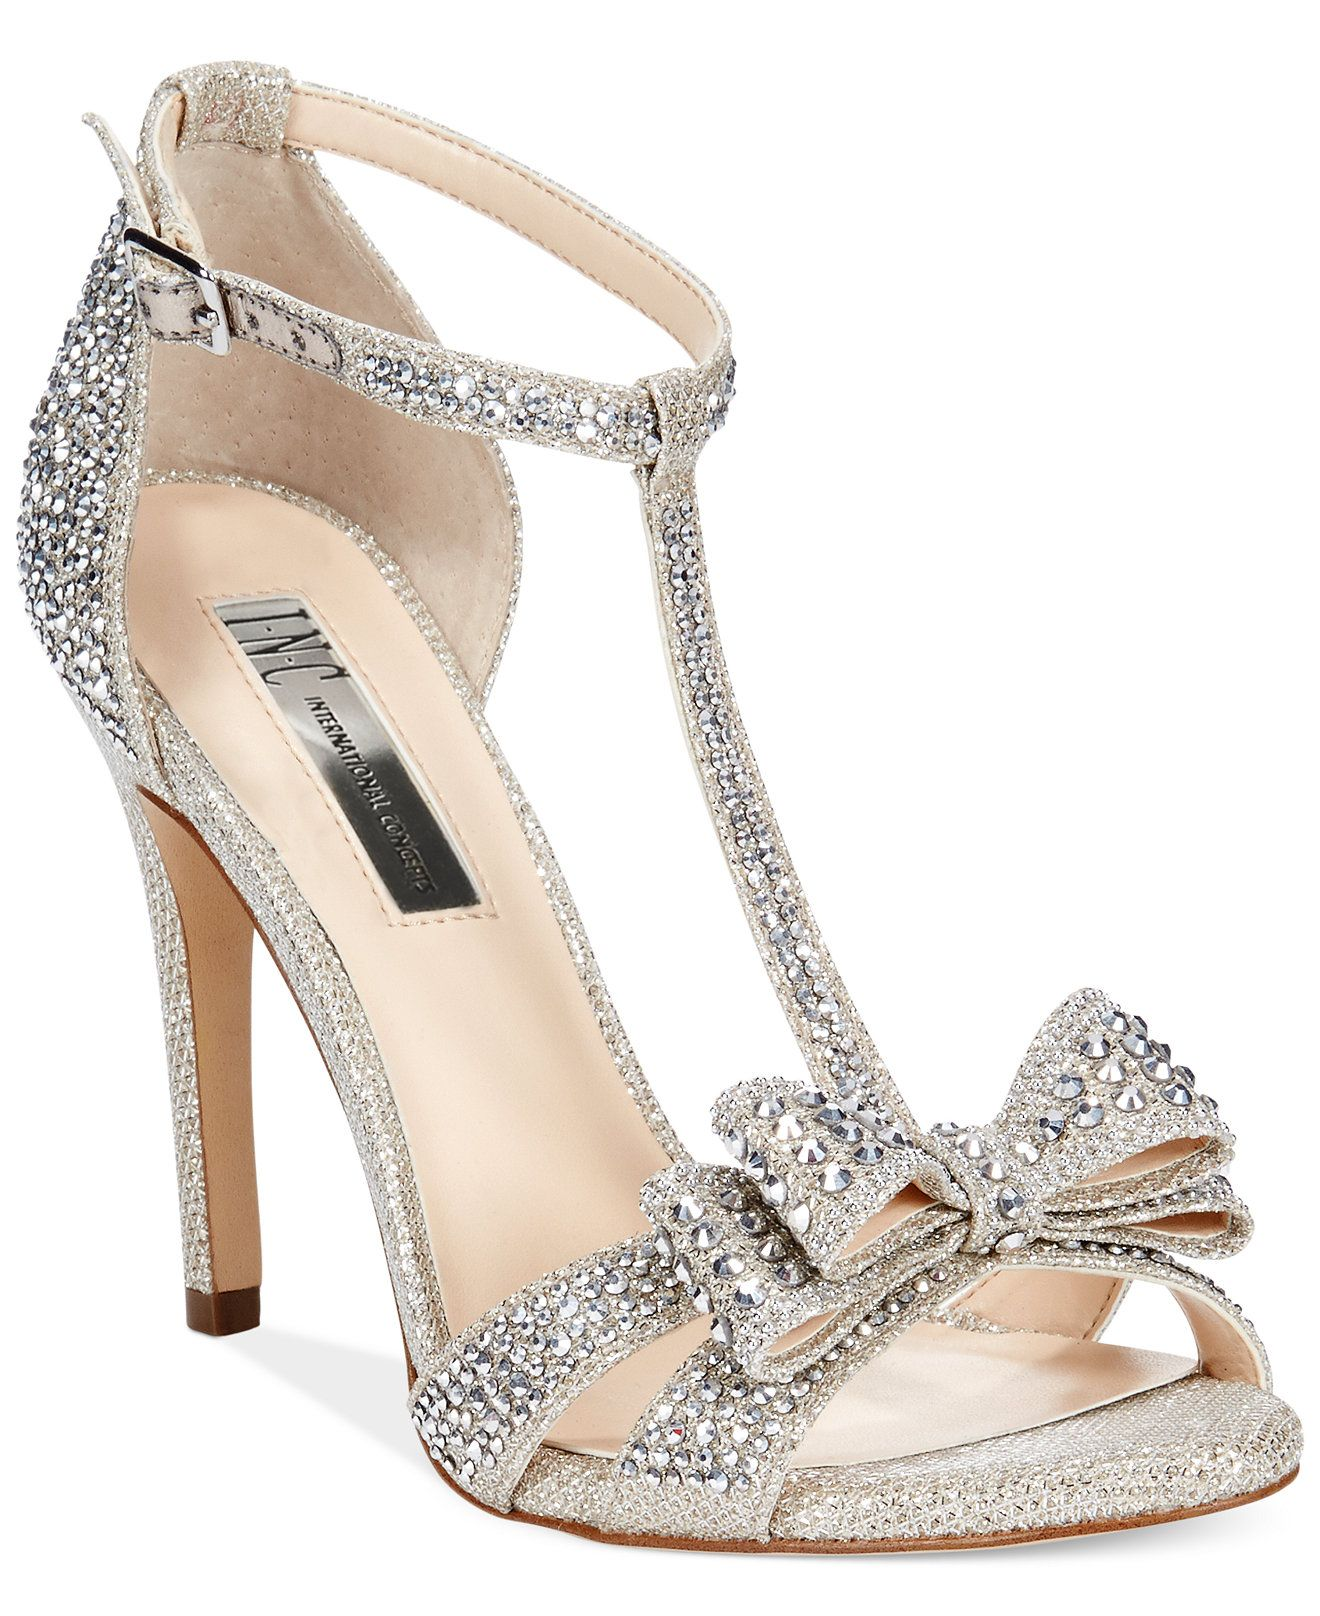 30350df26b9 INC International Concepts Women s Reesie Rhinestone Bow Evening Sandals